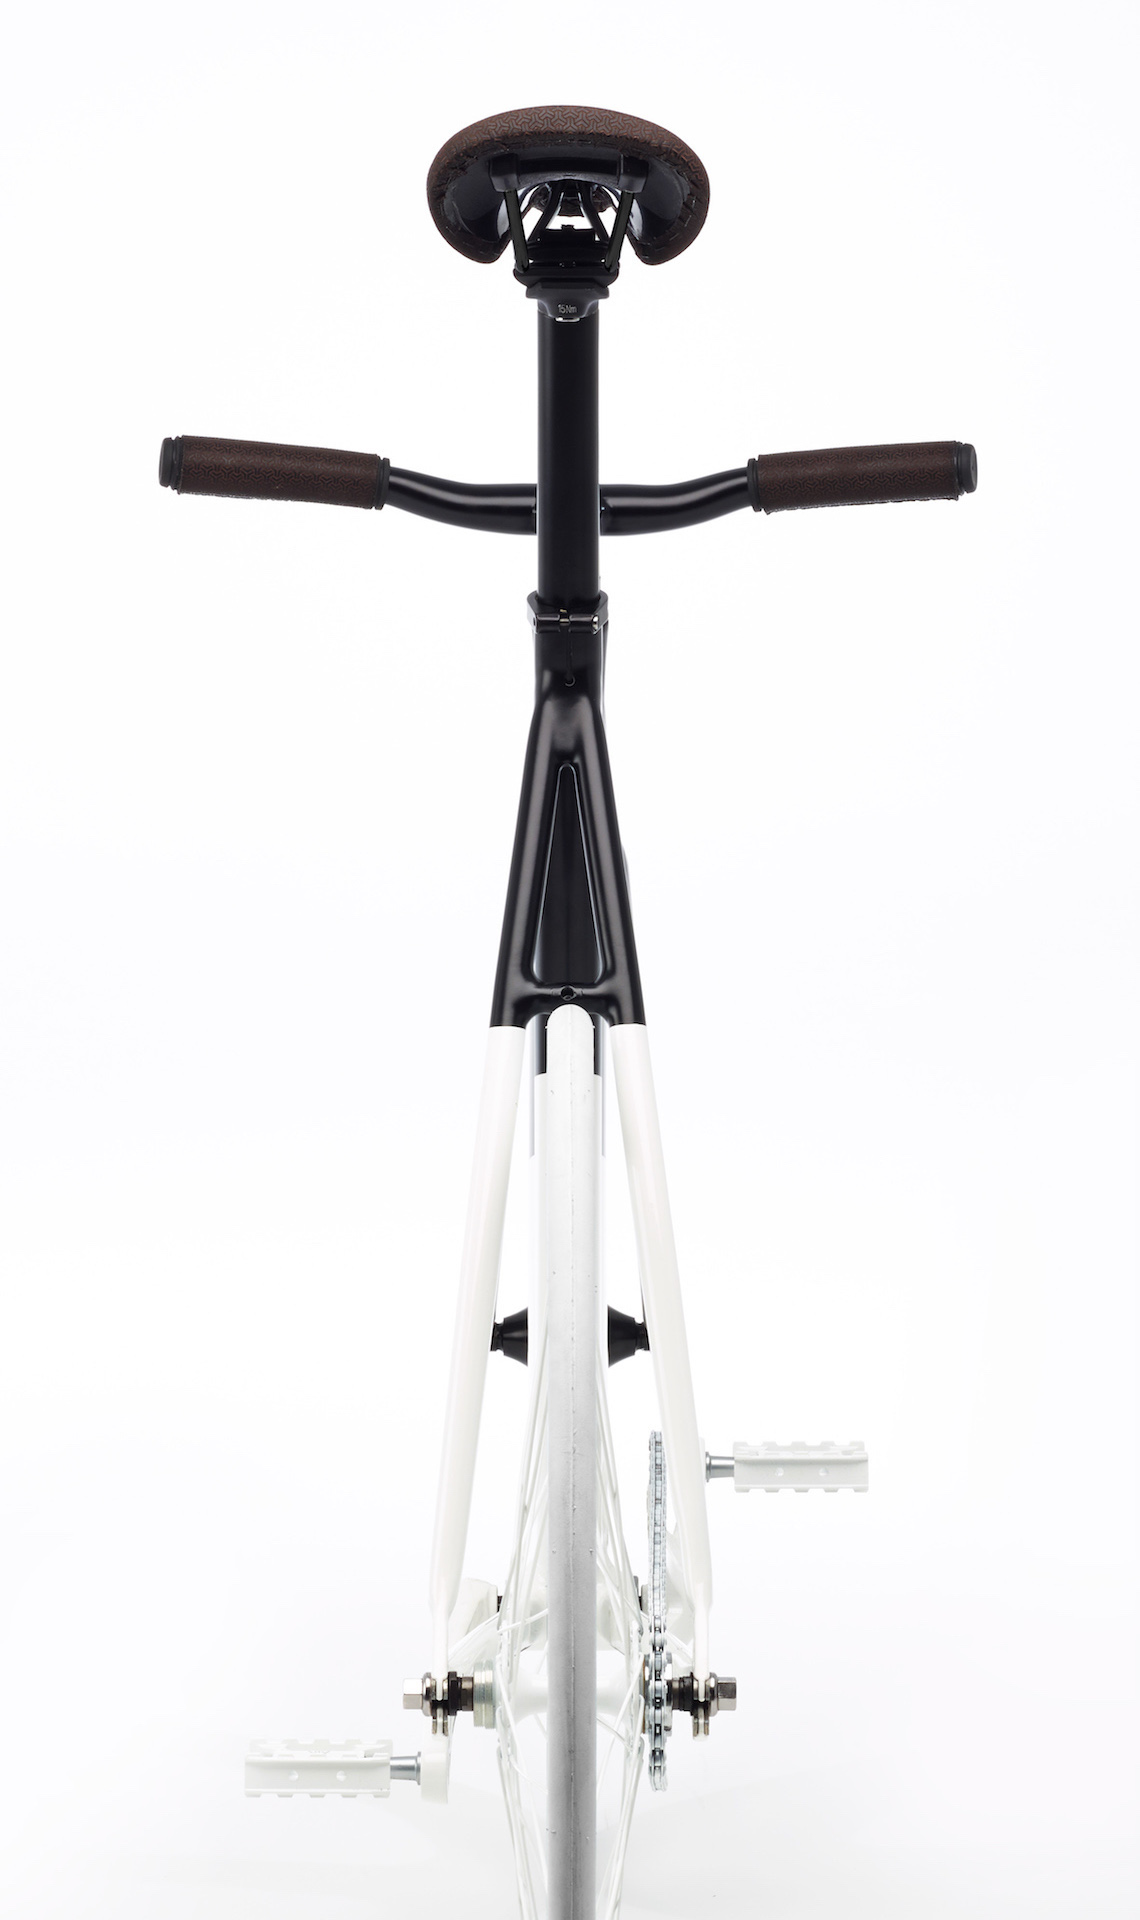 Black & White Fixie eltipo g_graphic_urbancycling_2